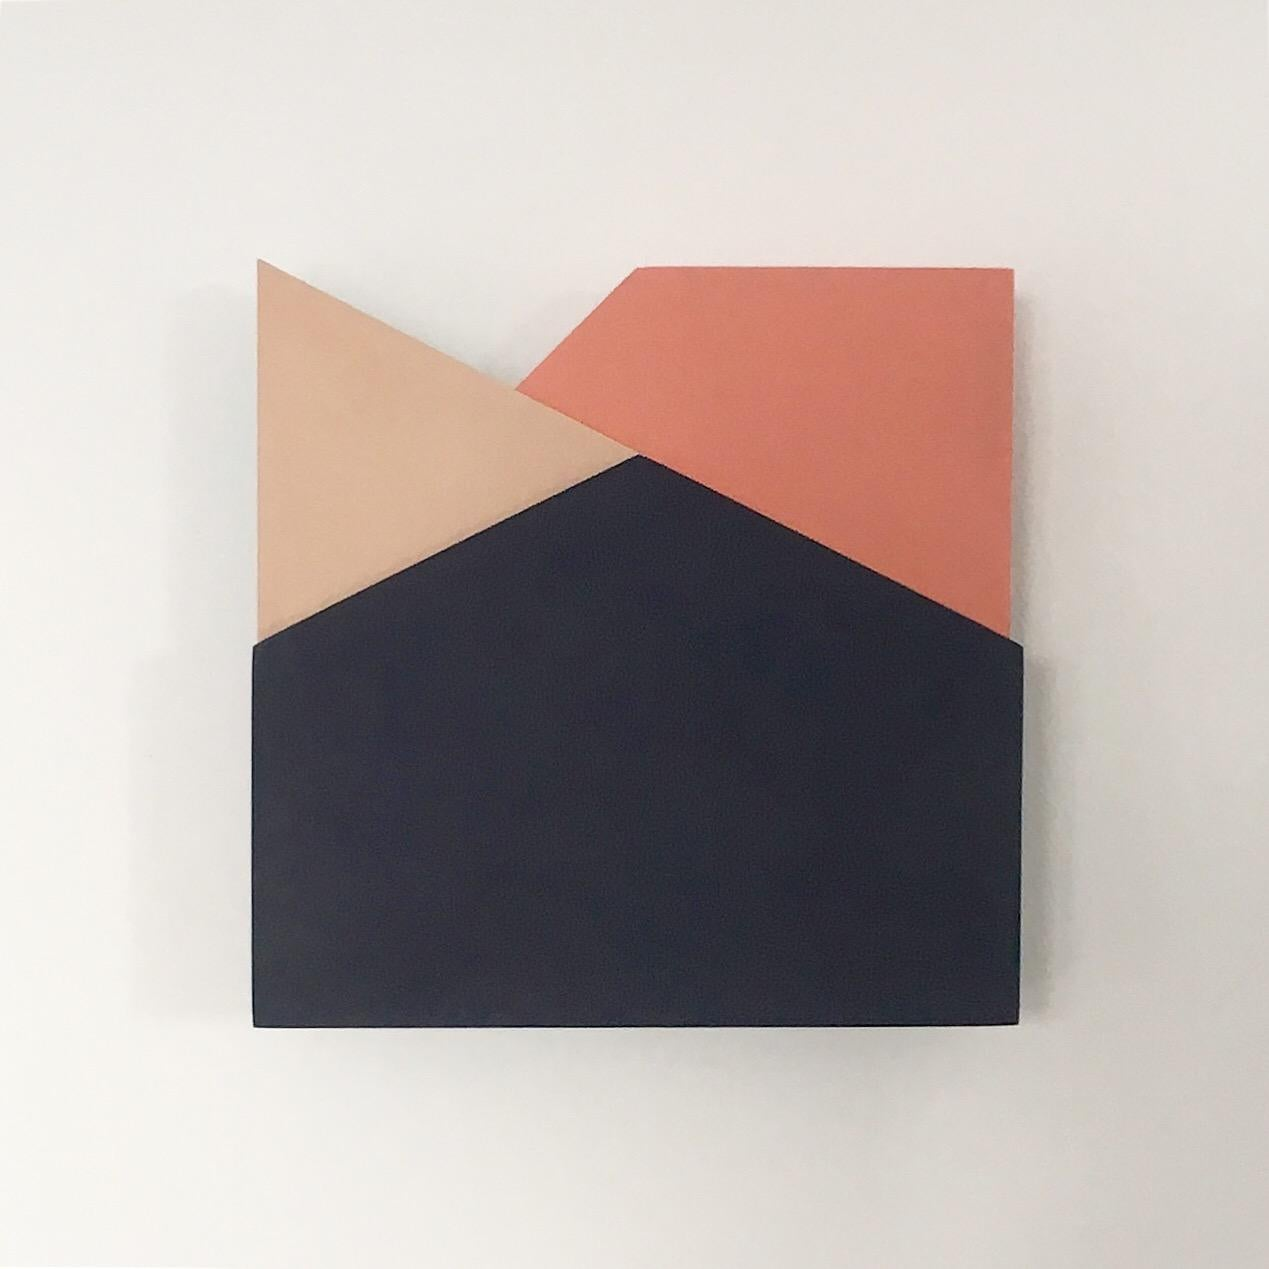 'Perspective Study 005': A Sculptural Abstract Painting by Laura Jane Scott